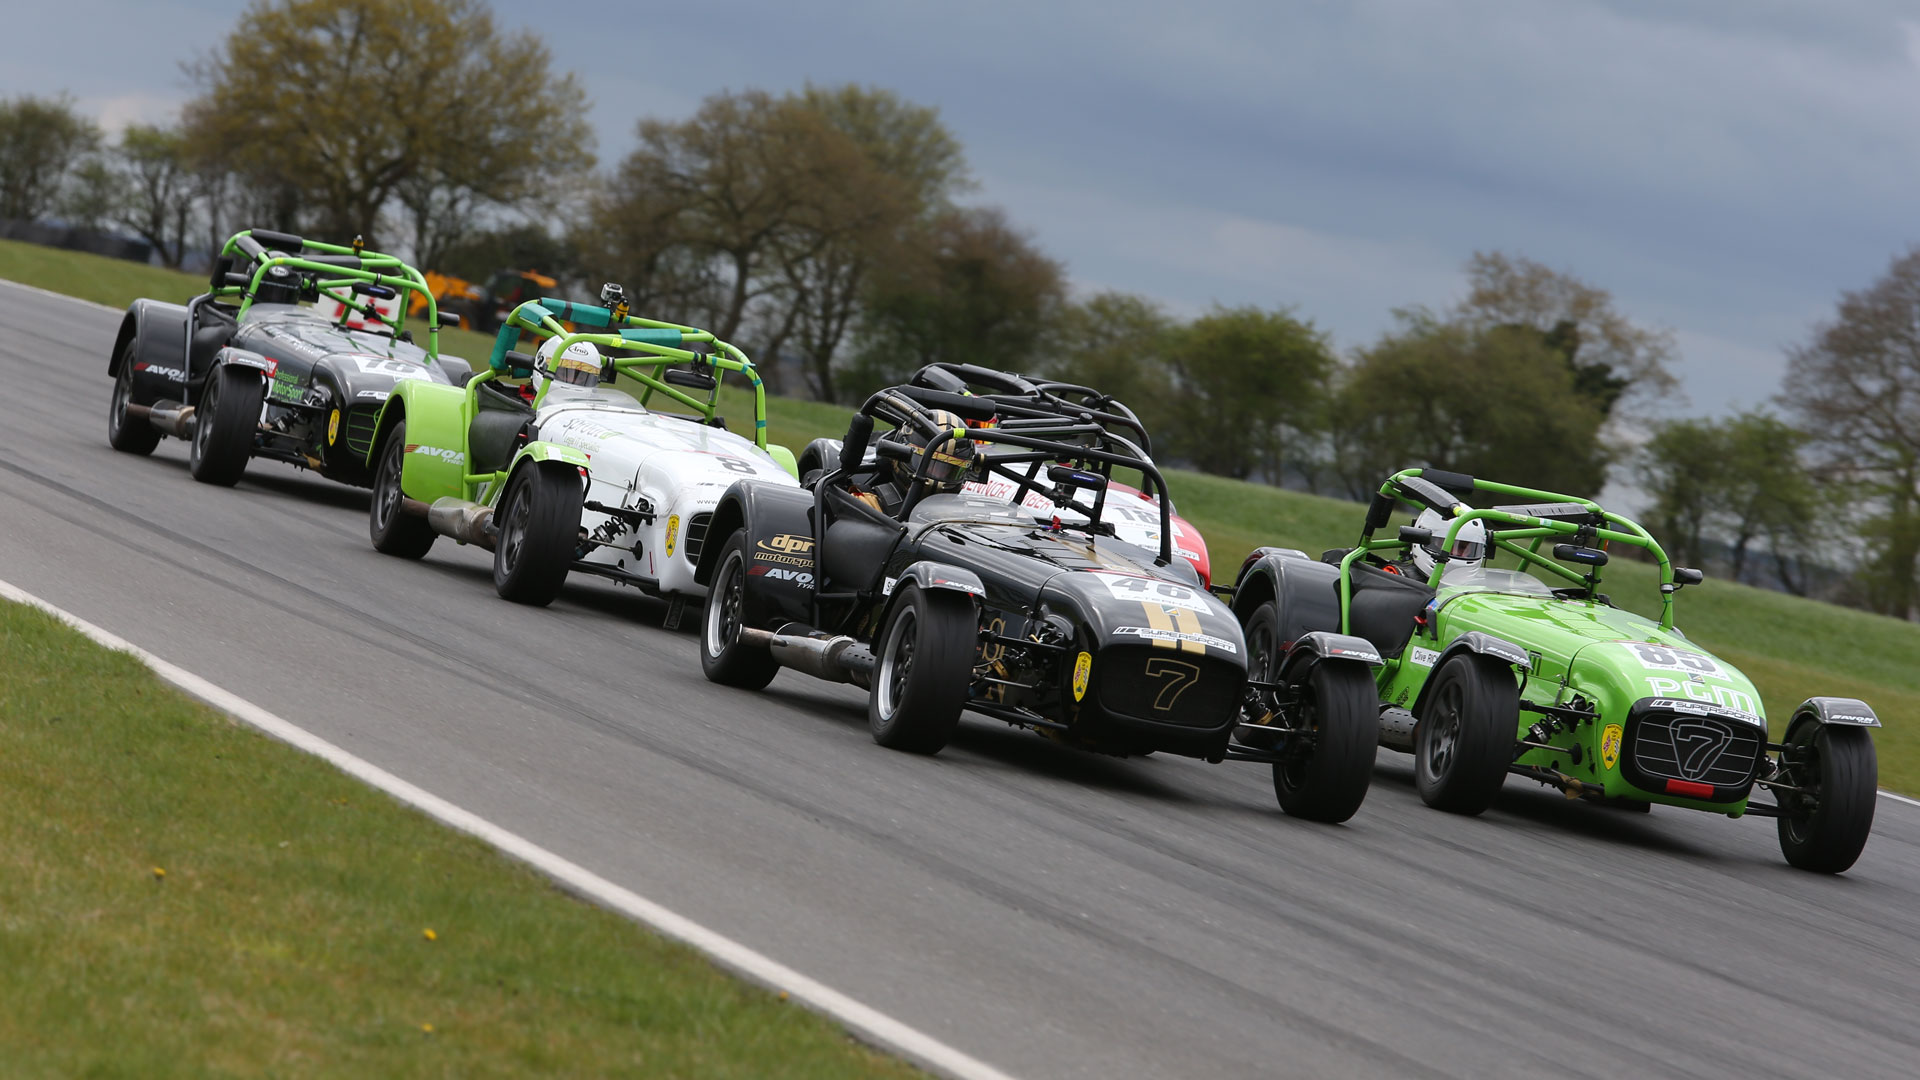 Caterham Motorsport - climbing the ladder in the iconic lightweight sports car